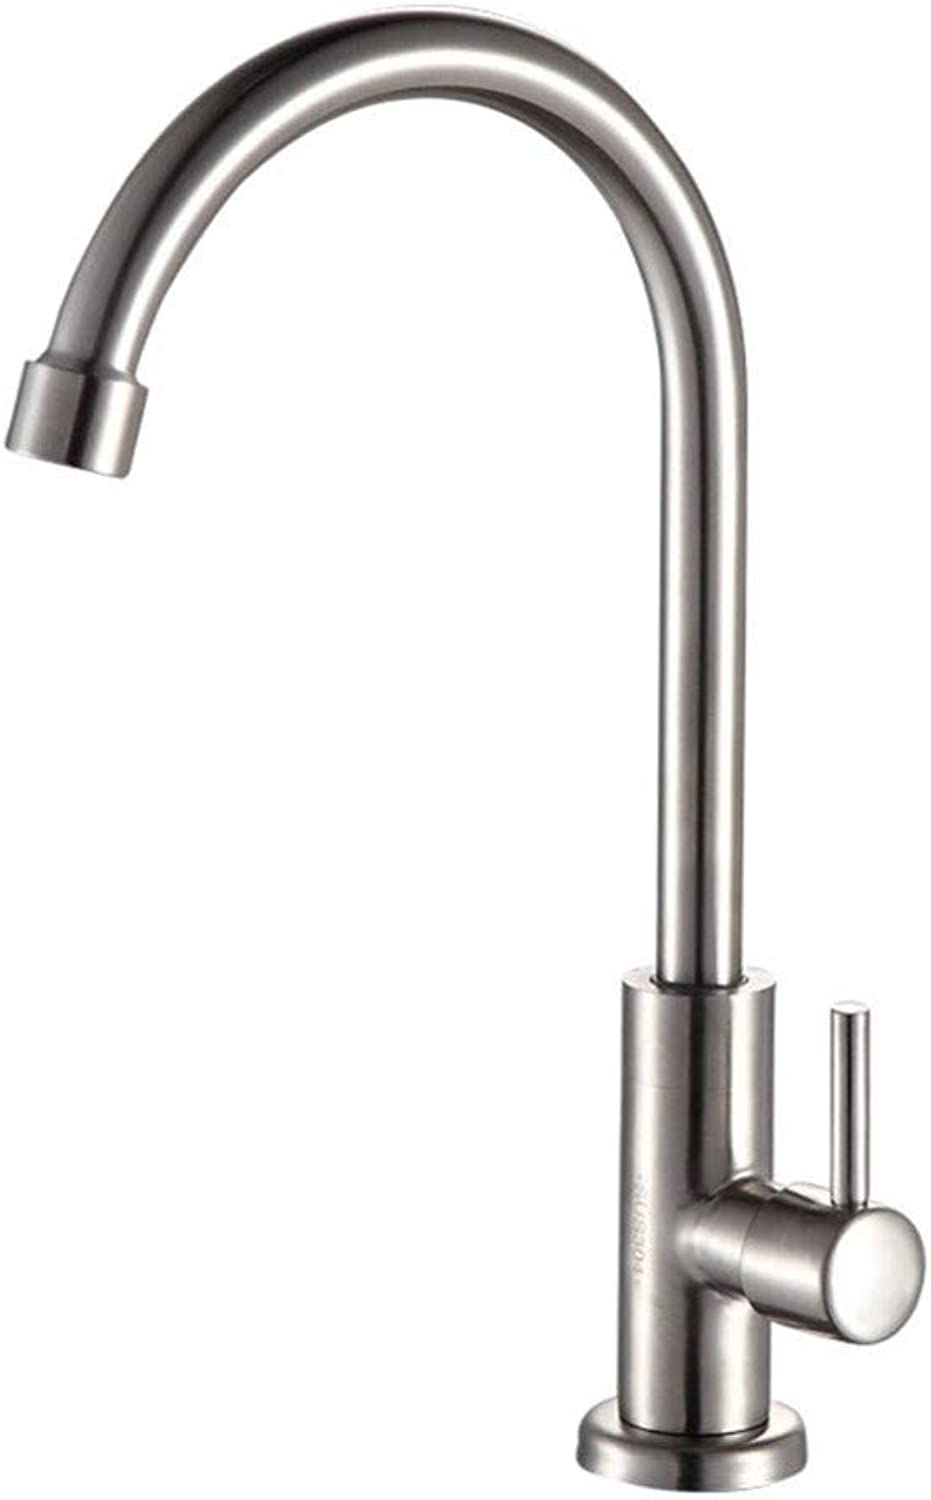 360° redating Faucet Retro Faucetbrushed Nickel Kitchen Faucet Single Cold Tap Kitchen Sink Faucet